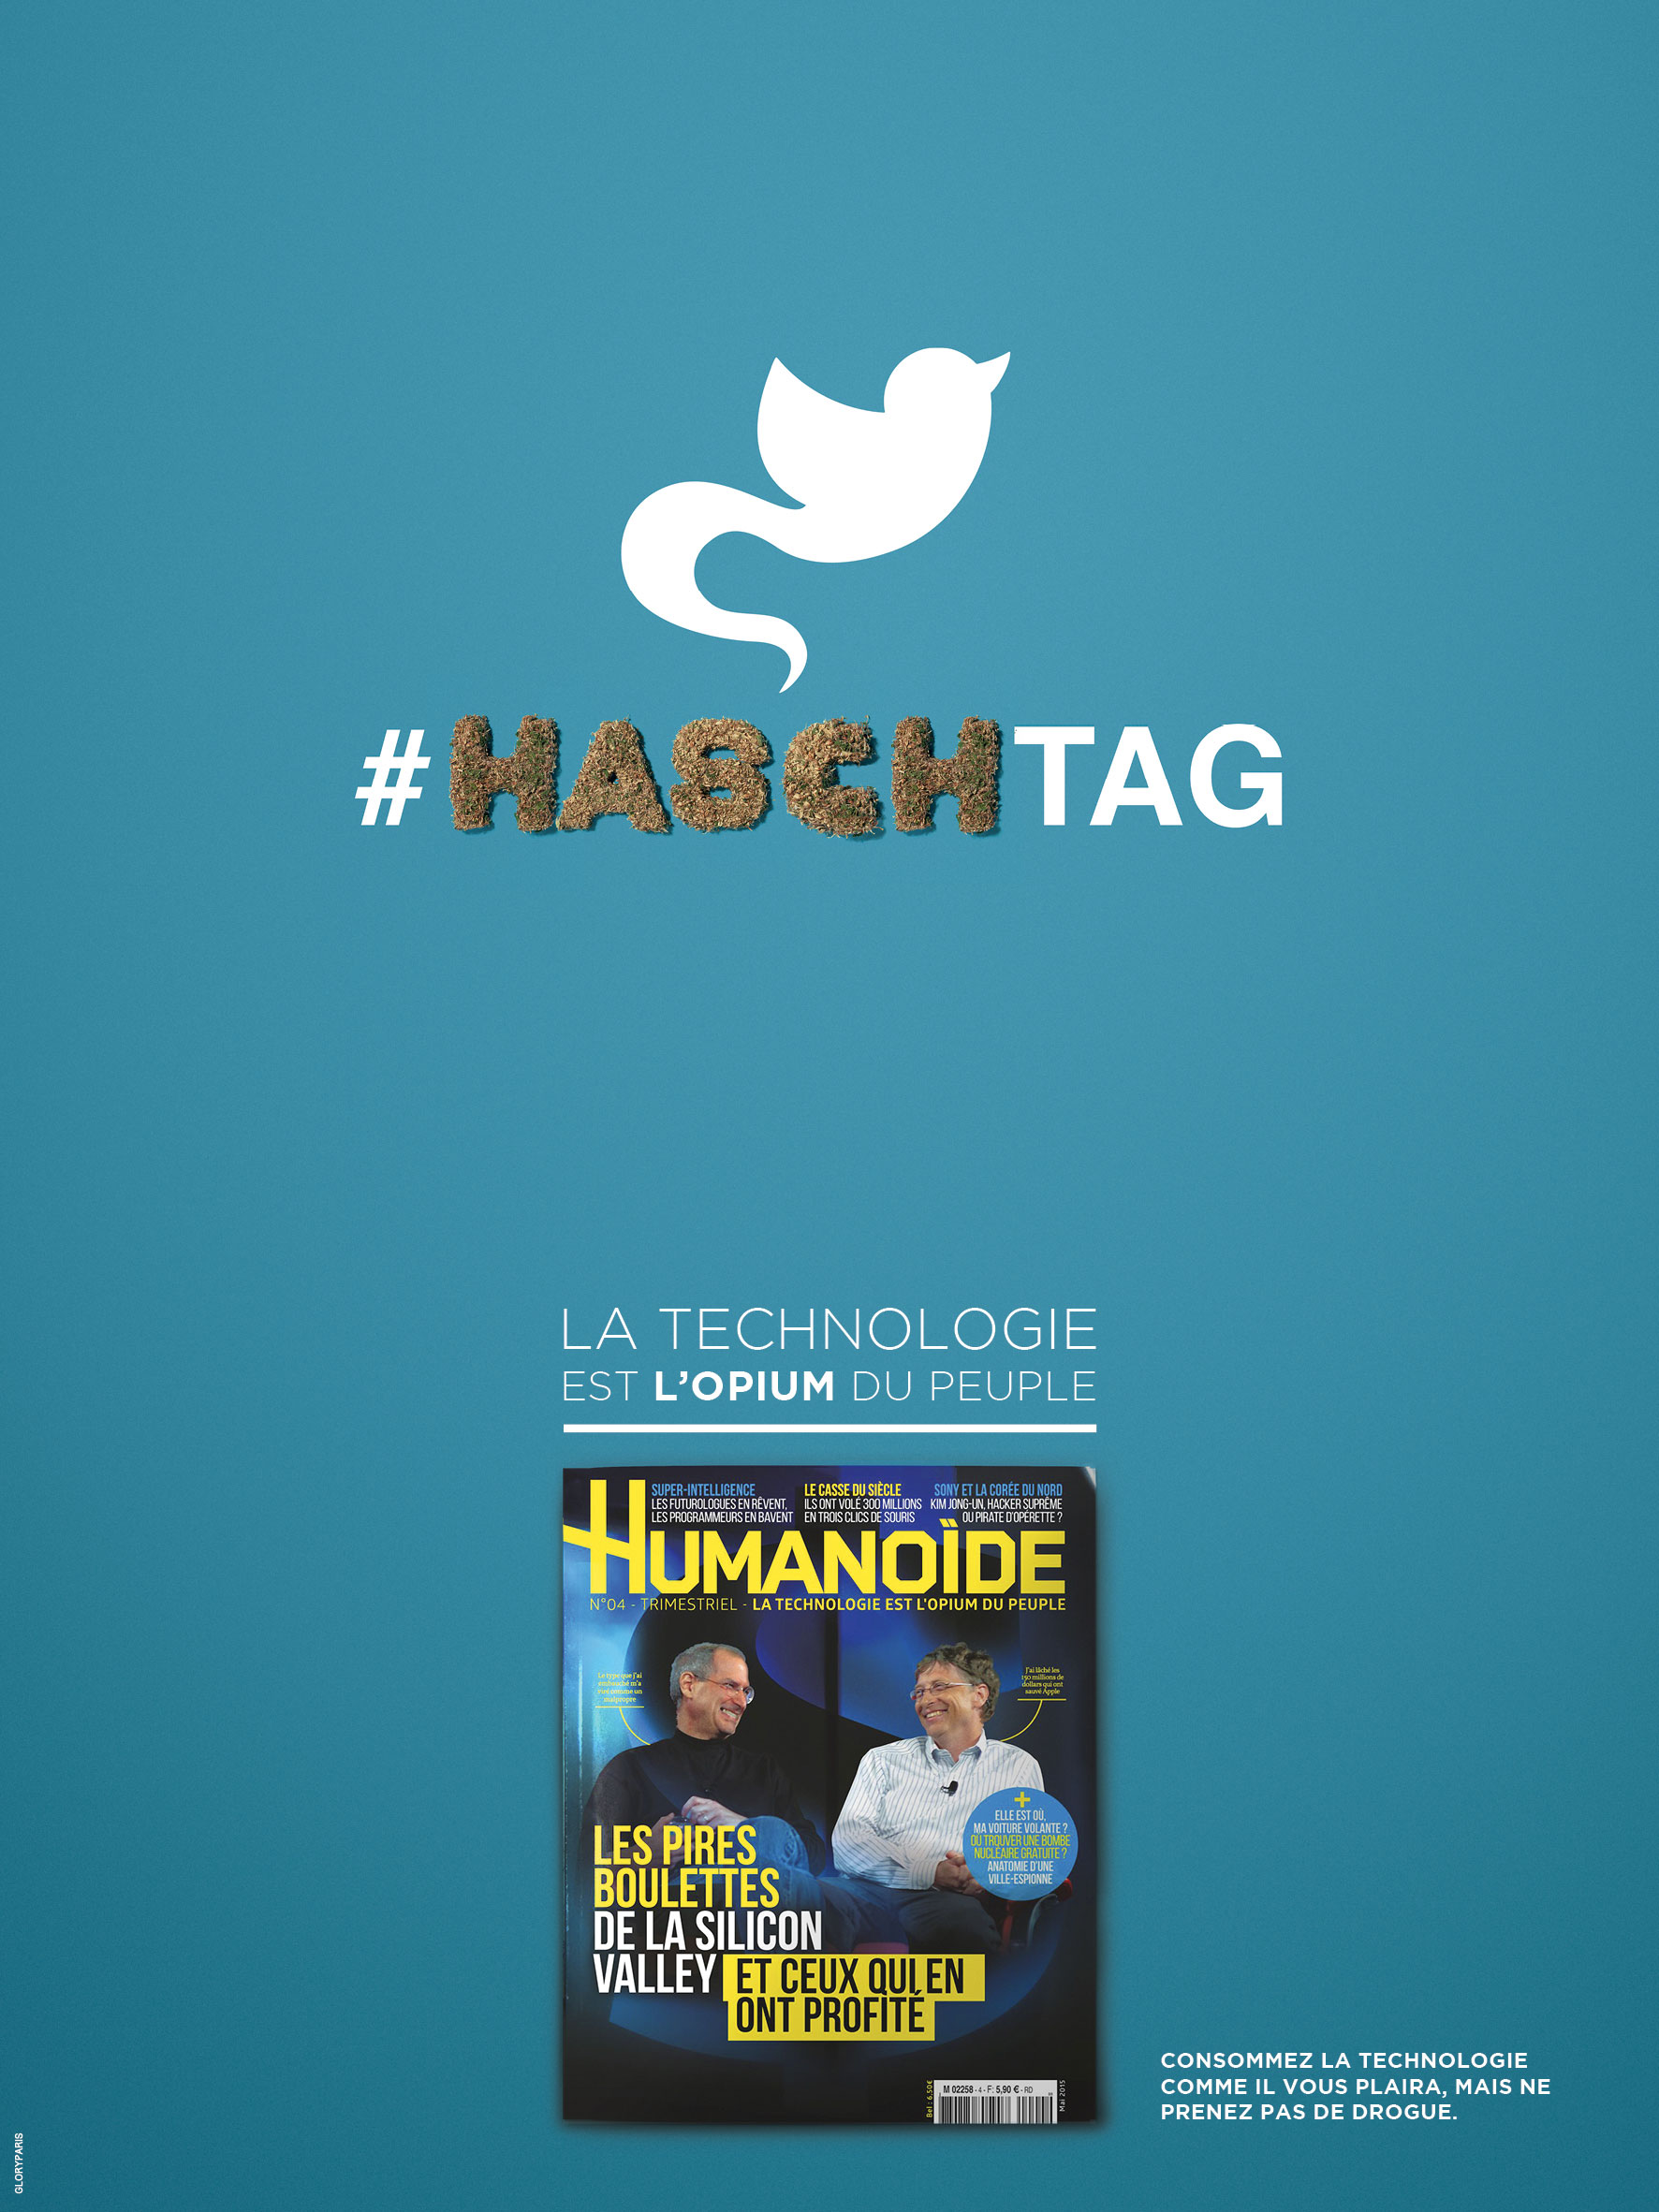 dans-ta-pub-humanoide-print-publicité-affiche-technologie-web-drogue-addiction-digital-4